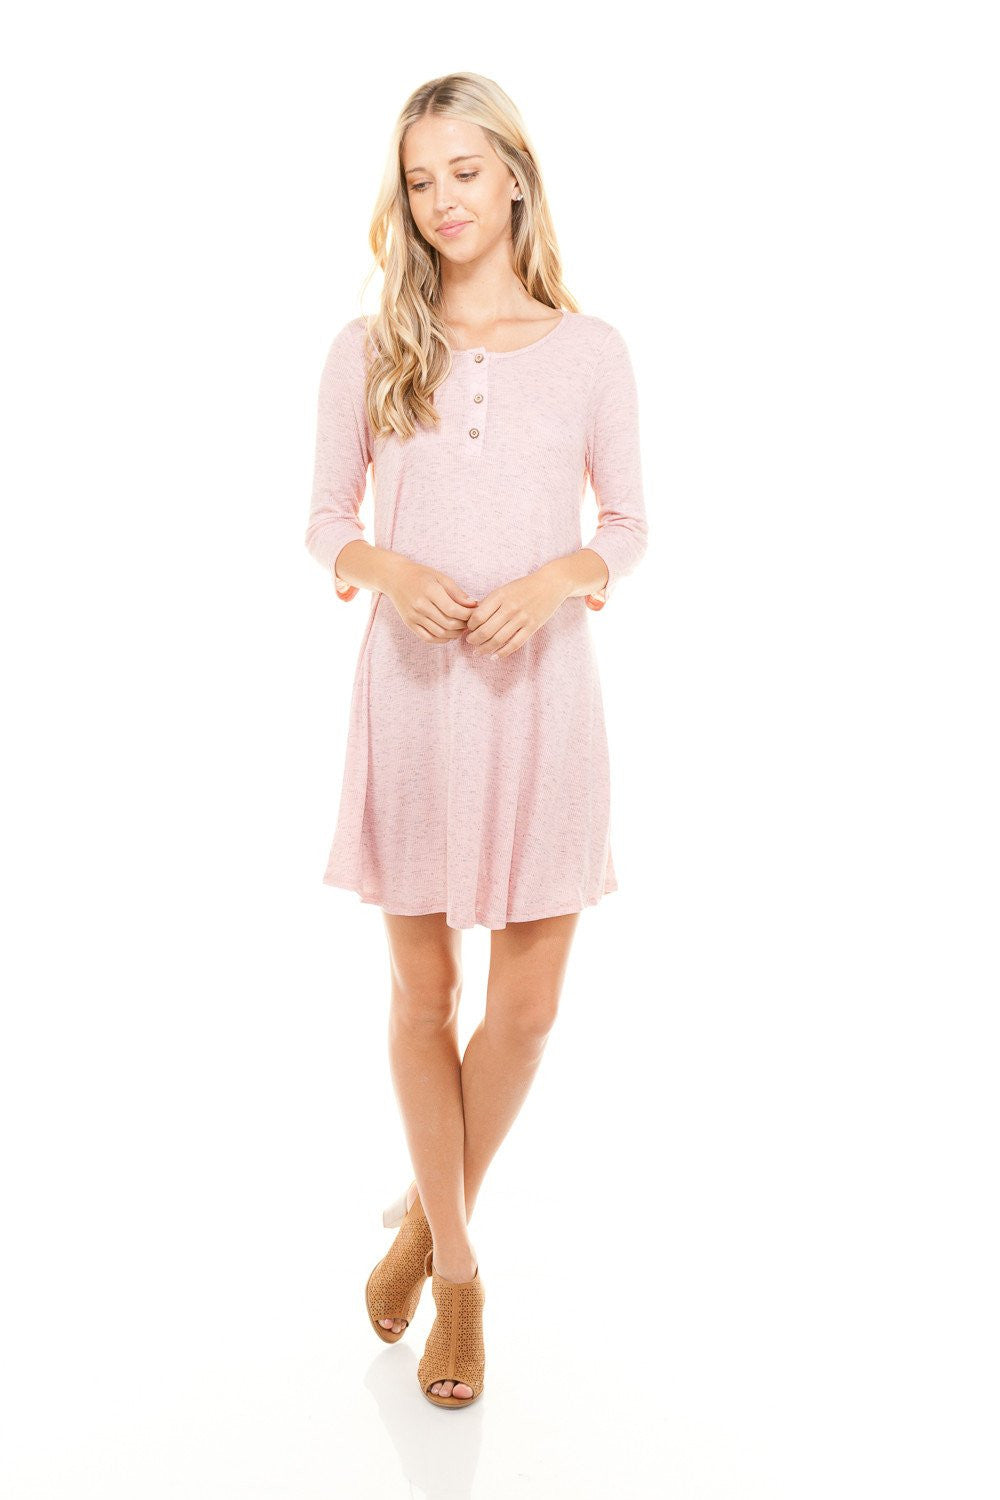 Women's 3/4 Three Quarter Sleeve Button Down Dress